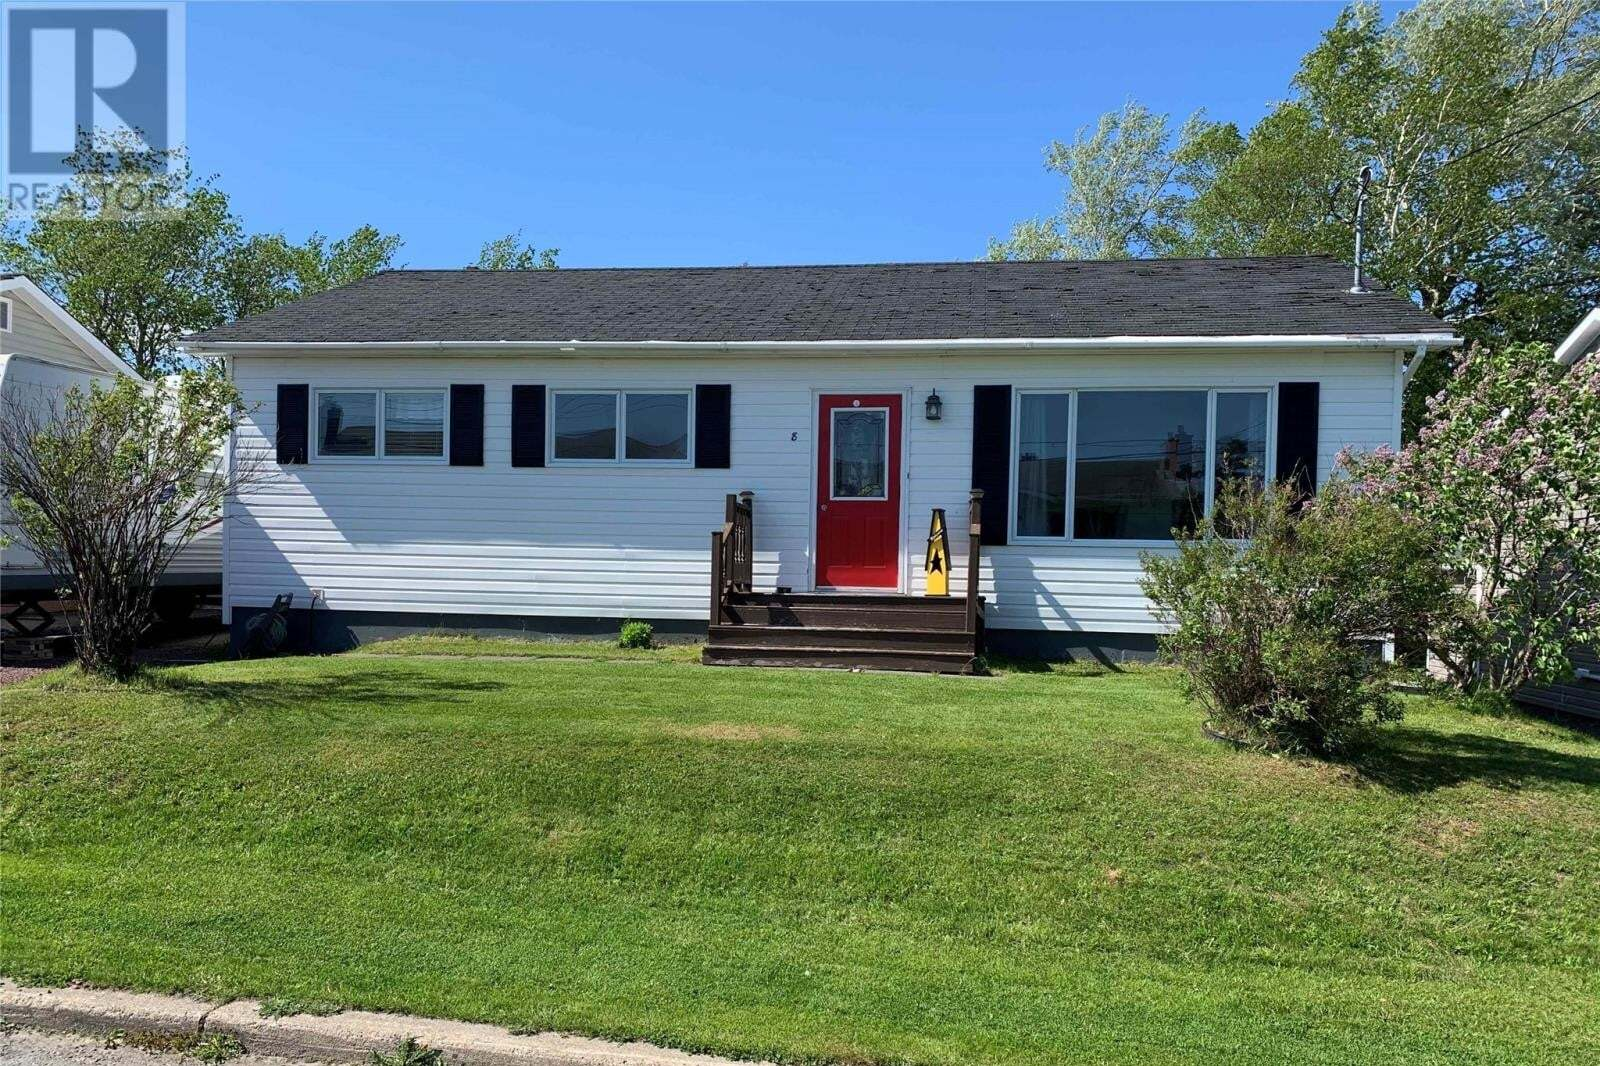 House for sale at 8 George St Lewisporte Newfoundland - MLS: 1217889